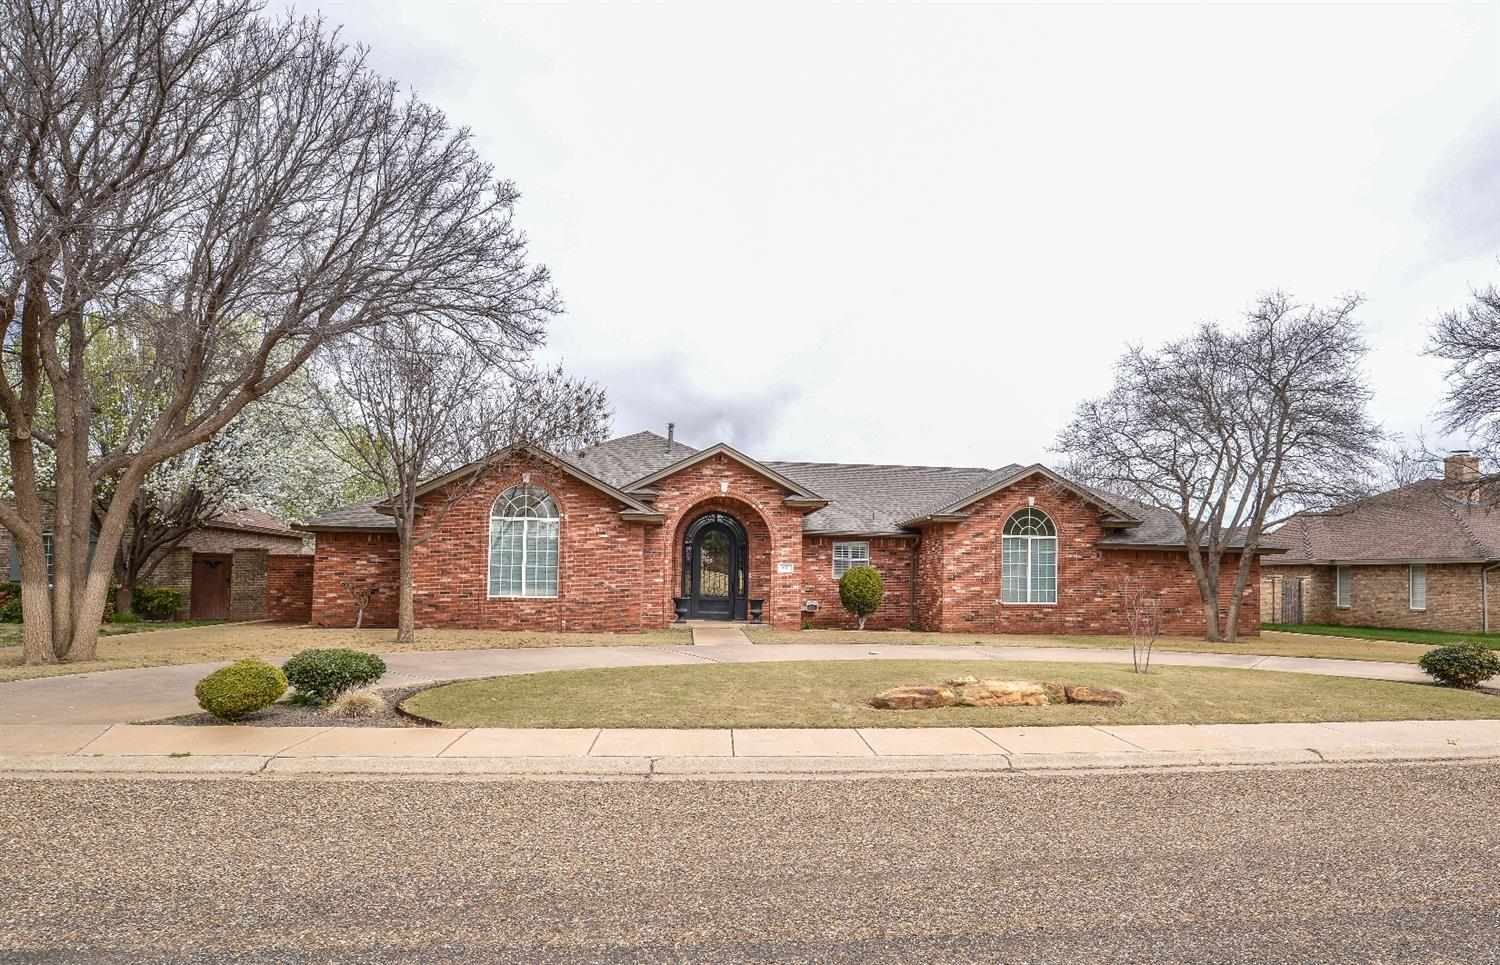 Welcome HOME! This incredible 4/3/3 is located in one of Levelland's most sought after neighborhoods, Ridgecrest. With over 2900 square feet there is plenty of room for the whole family. All bedrooms are large with built ins, and the garage even has an extra space that would be perfect as a small man cave or work space. The entire home boasts pride of ownership with upgrades like real wood flooring, granite in the kitchen, a huge master bedroom, shutters, an AMAZING iron door from Adoring Doors, a water softener, reverse osmosis system, a small barn in the back, and an incredible outdoor space with a covered patio and pergola! This home is in pristine condition, and priced just right, come check it out today!